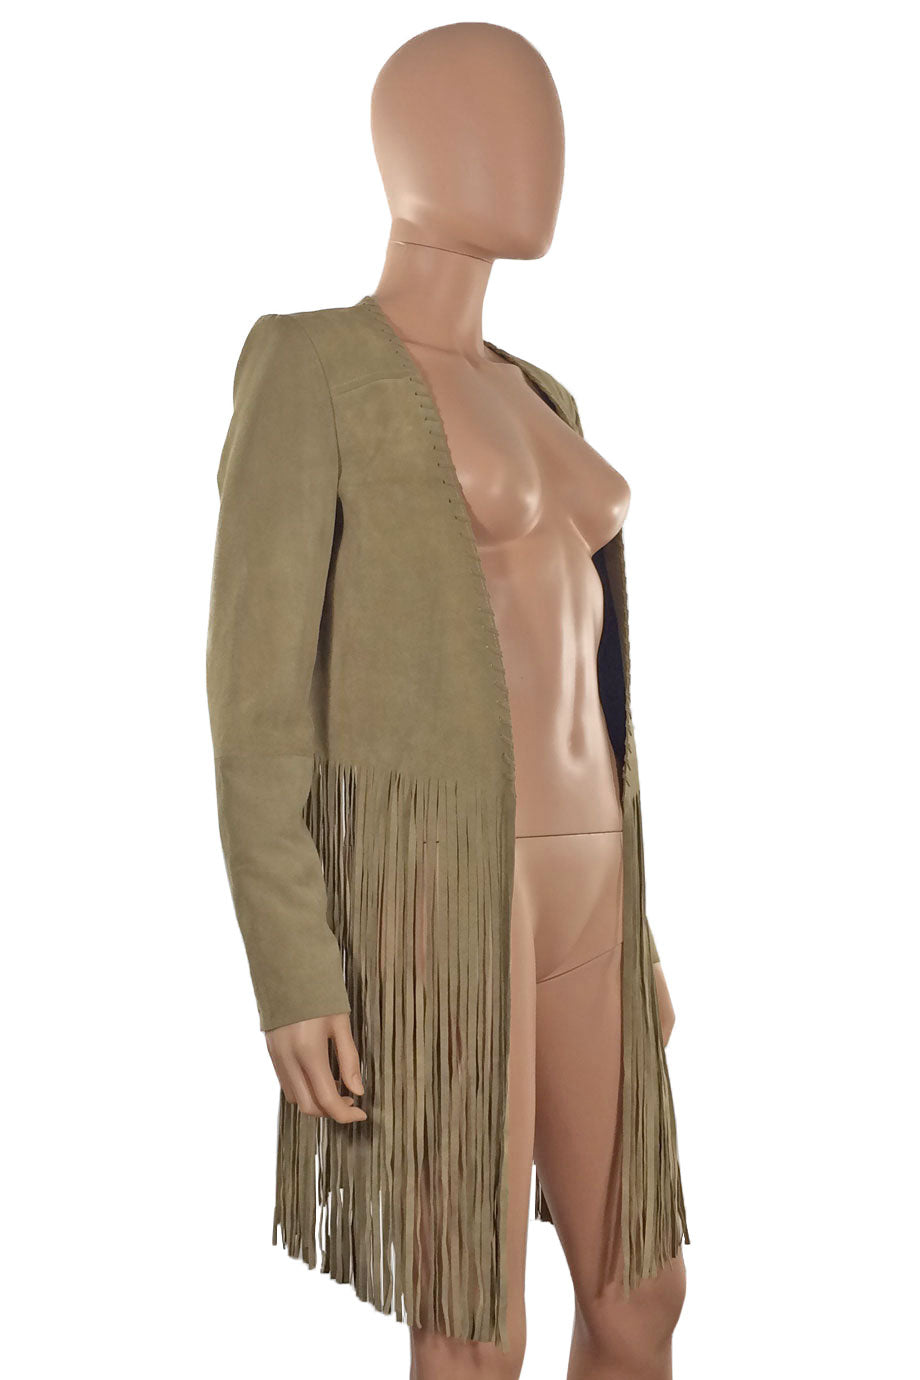 ThePerfext Tan Suede Christy Fringe Trim Open Front Jacket / Sz S-Style Therapy